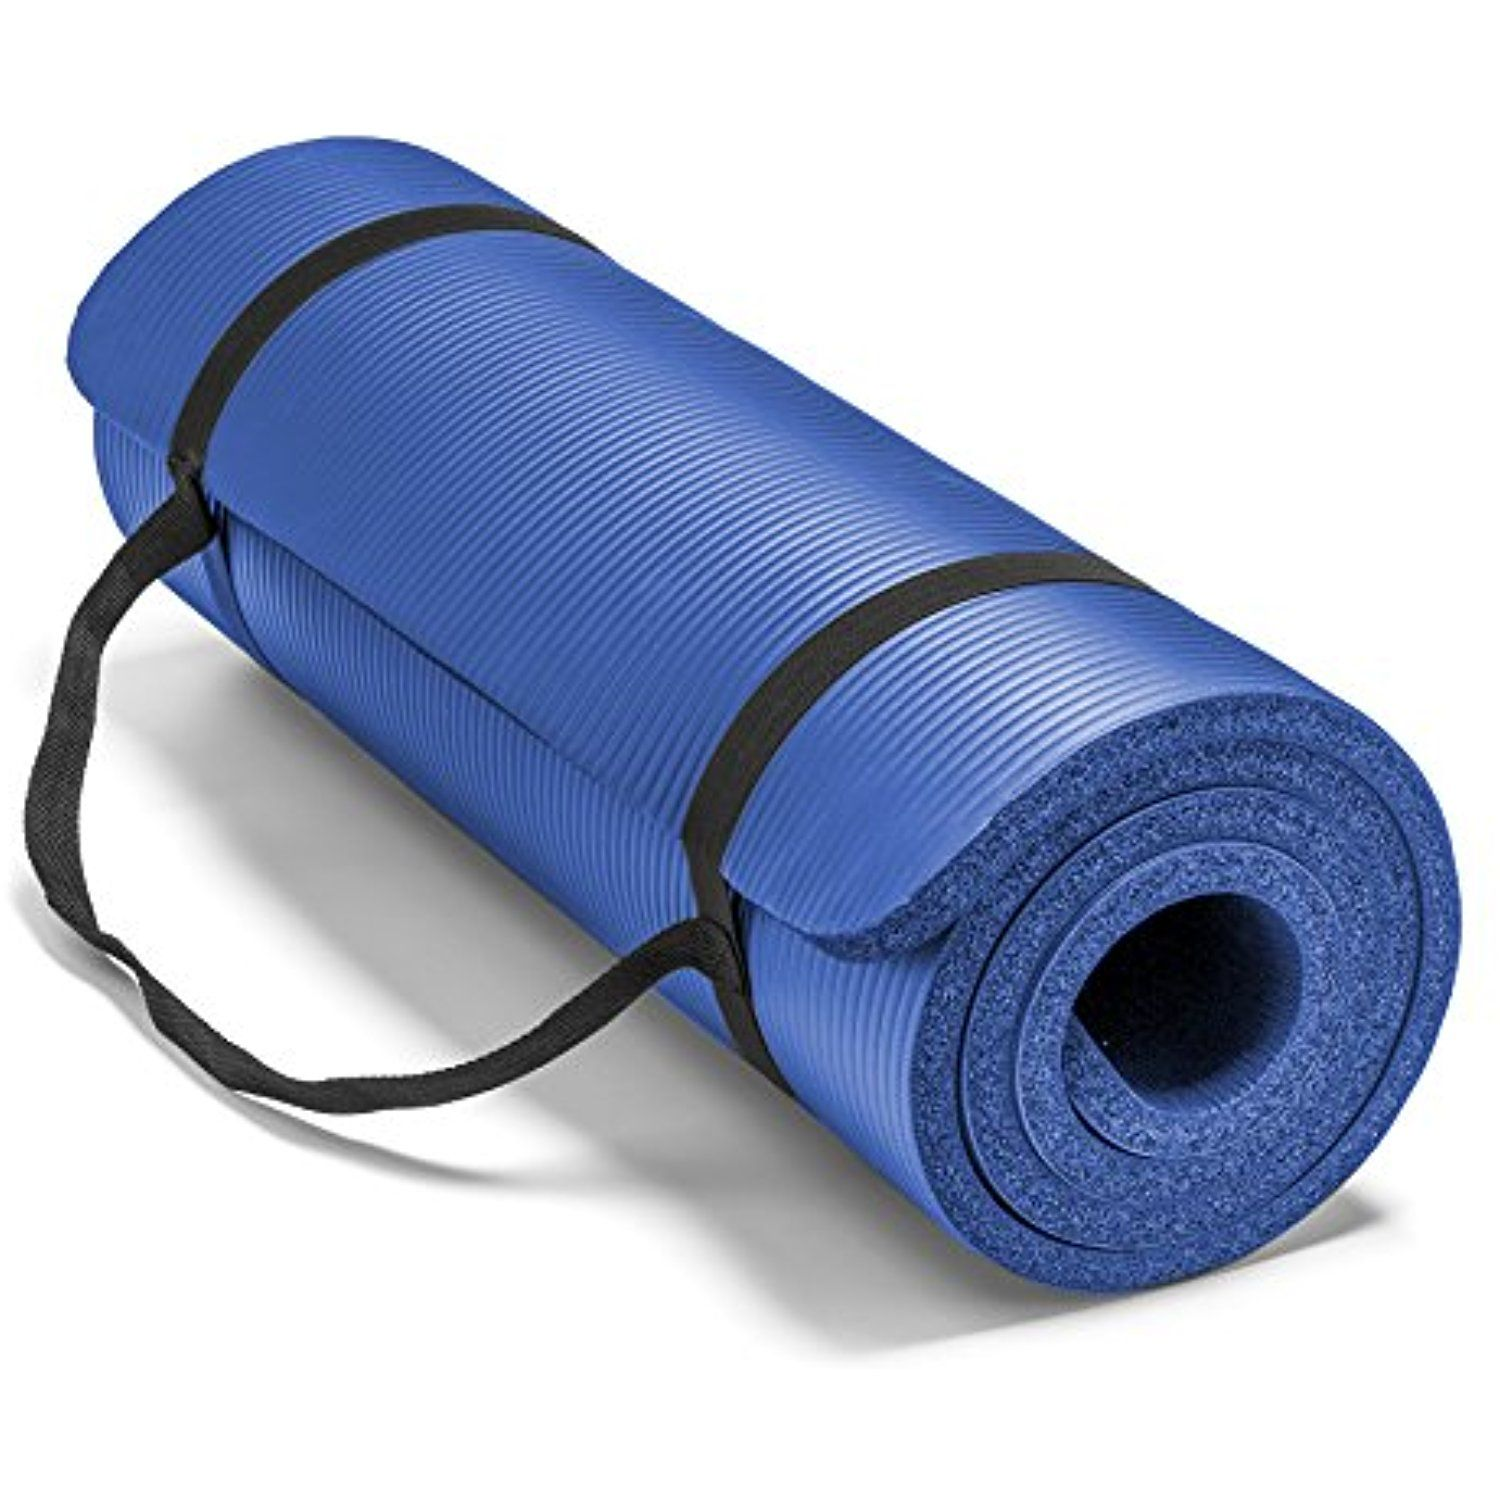 Spoga Premium 1 2 Inch Extra Thick High Density Exercise Yoga Mat With Carrying Strap Check Out This Great Mat Exercises Workout Accessories Thick Yoga Mats